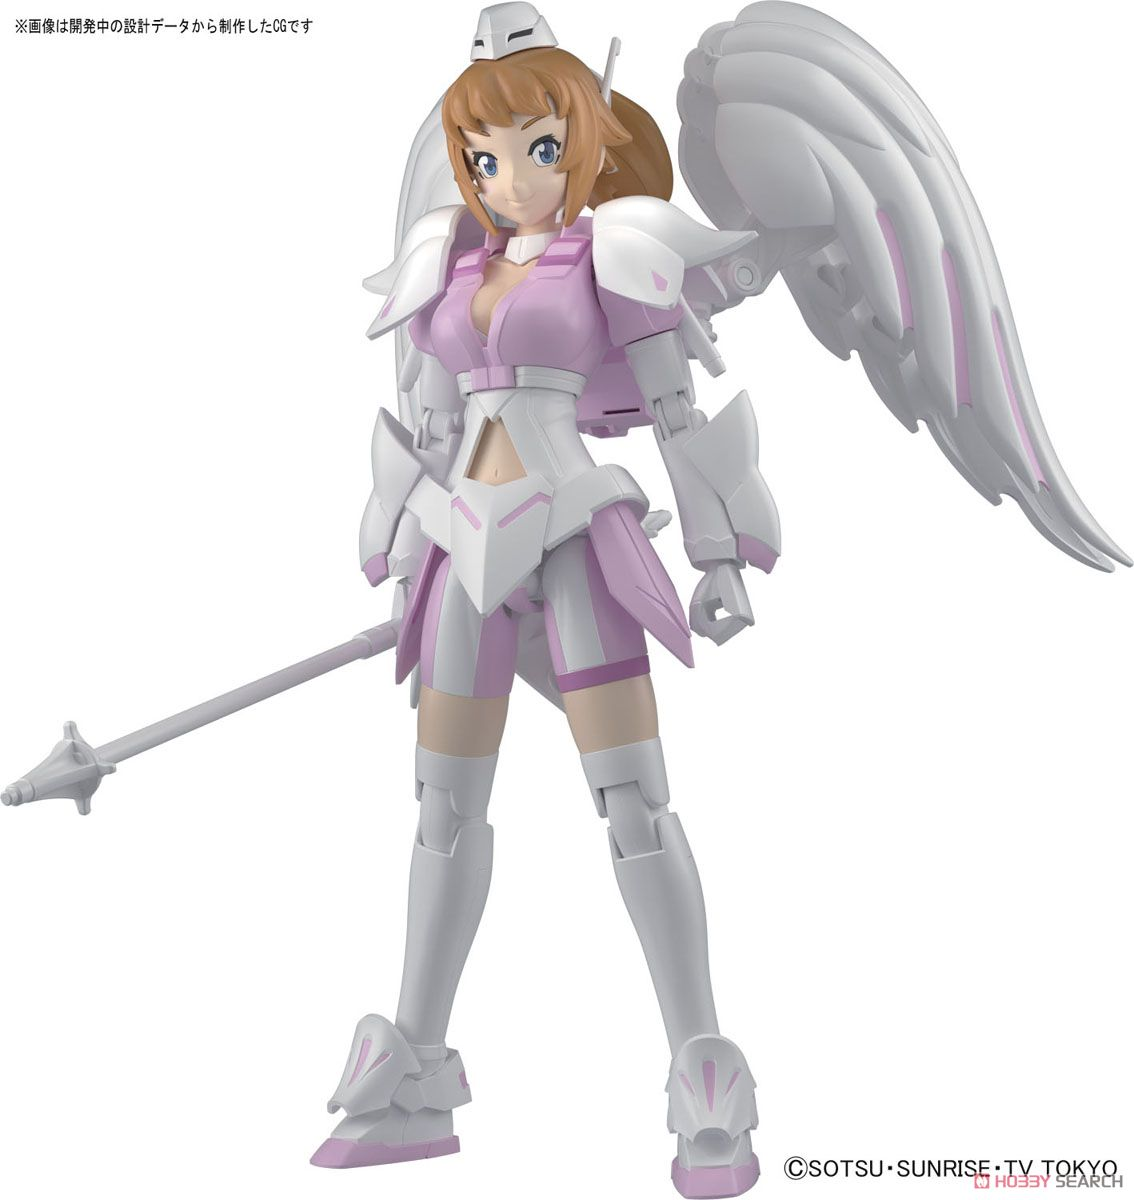 Super Fumina Axis Angel Ver. (HGBF) (Gundam Model Kits) Other picture1